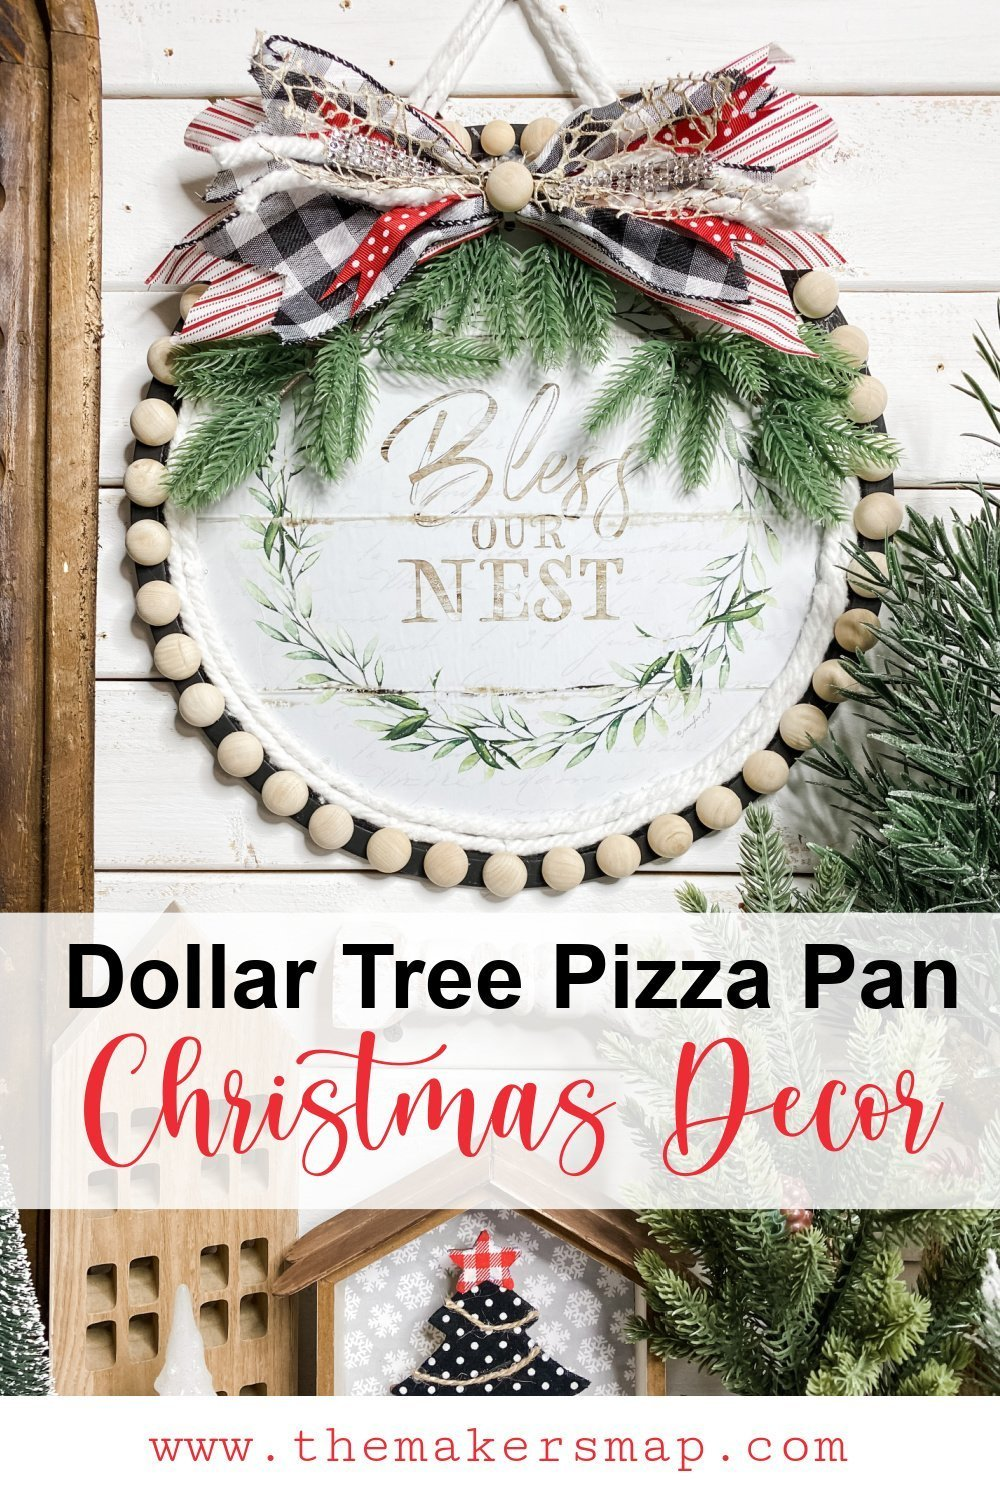 How To Make Pizza Pan Christmas Decor Dollar Tree Diy